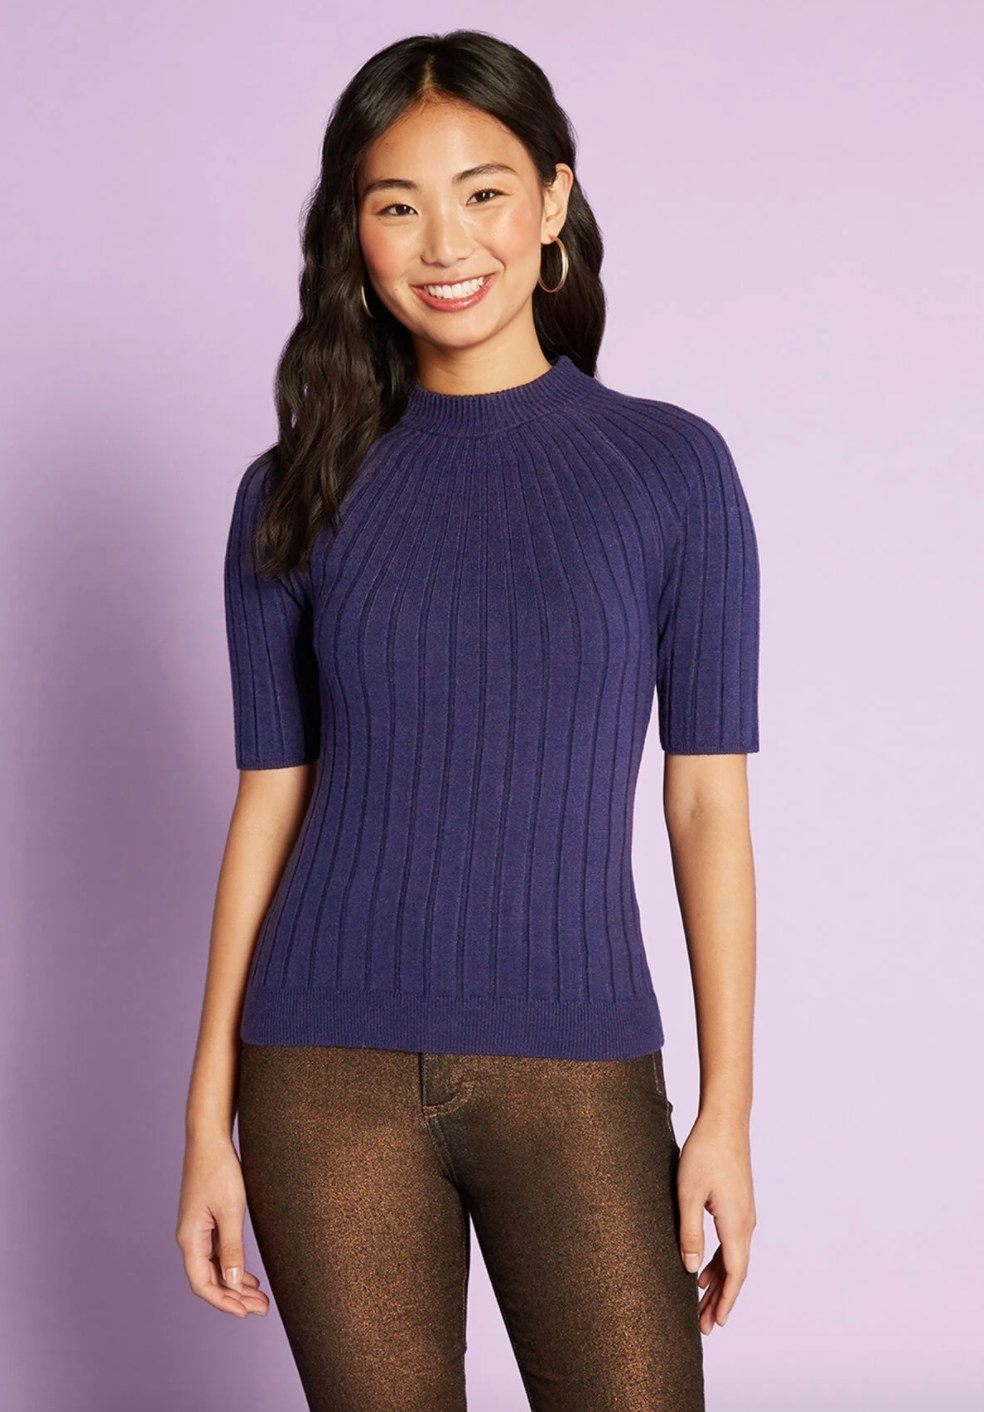 The mock neck sweater in blue